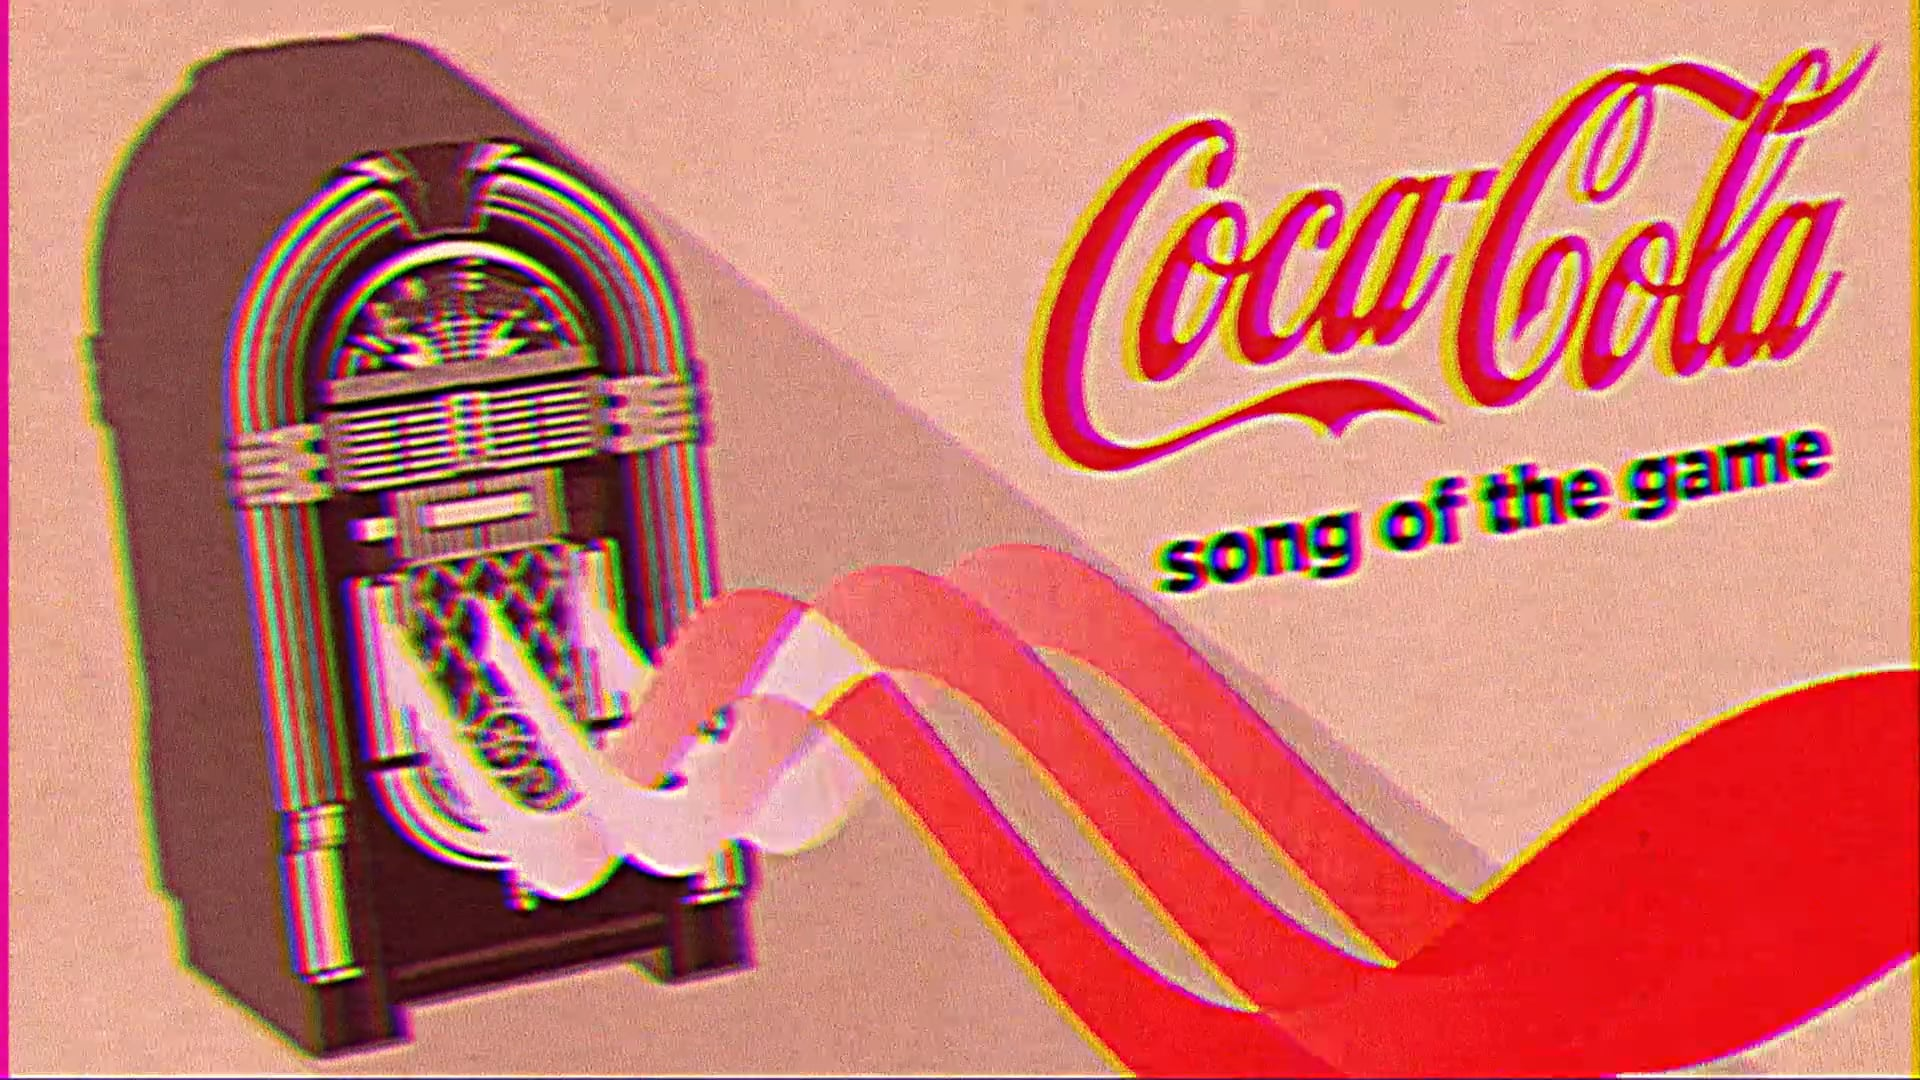 Coca-Cola Song of the Game